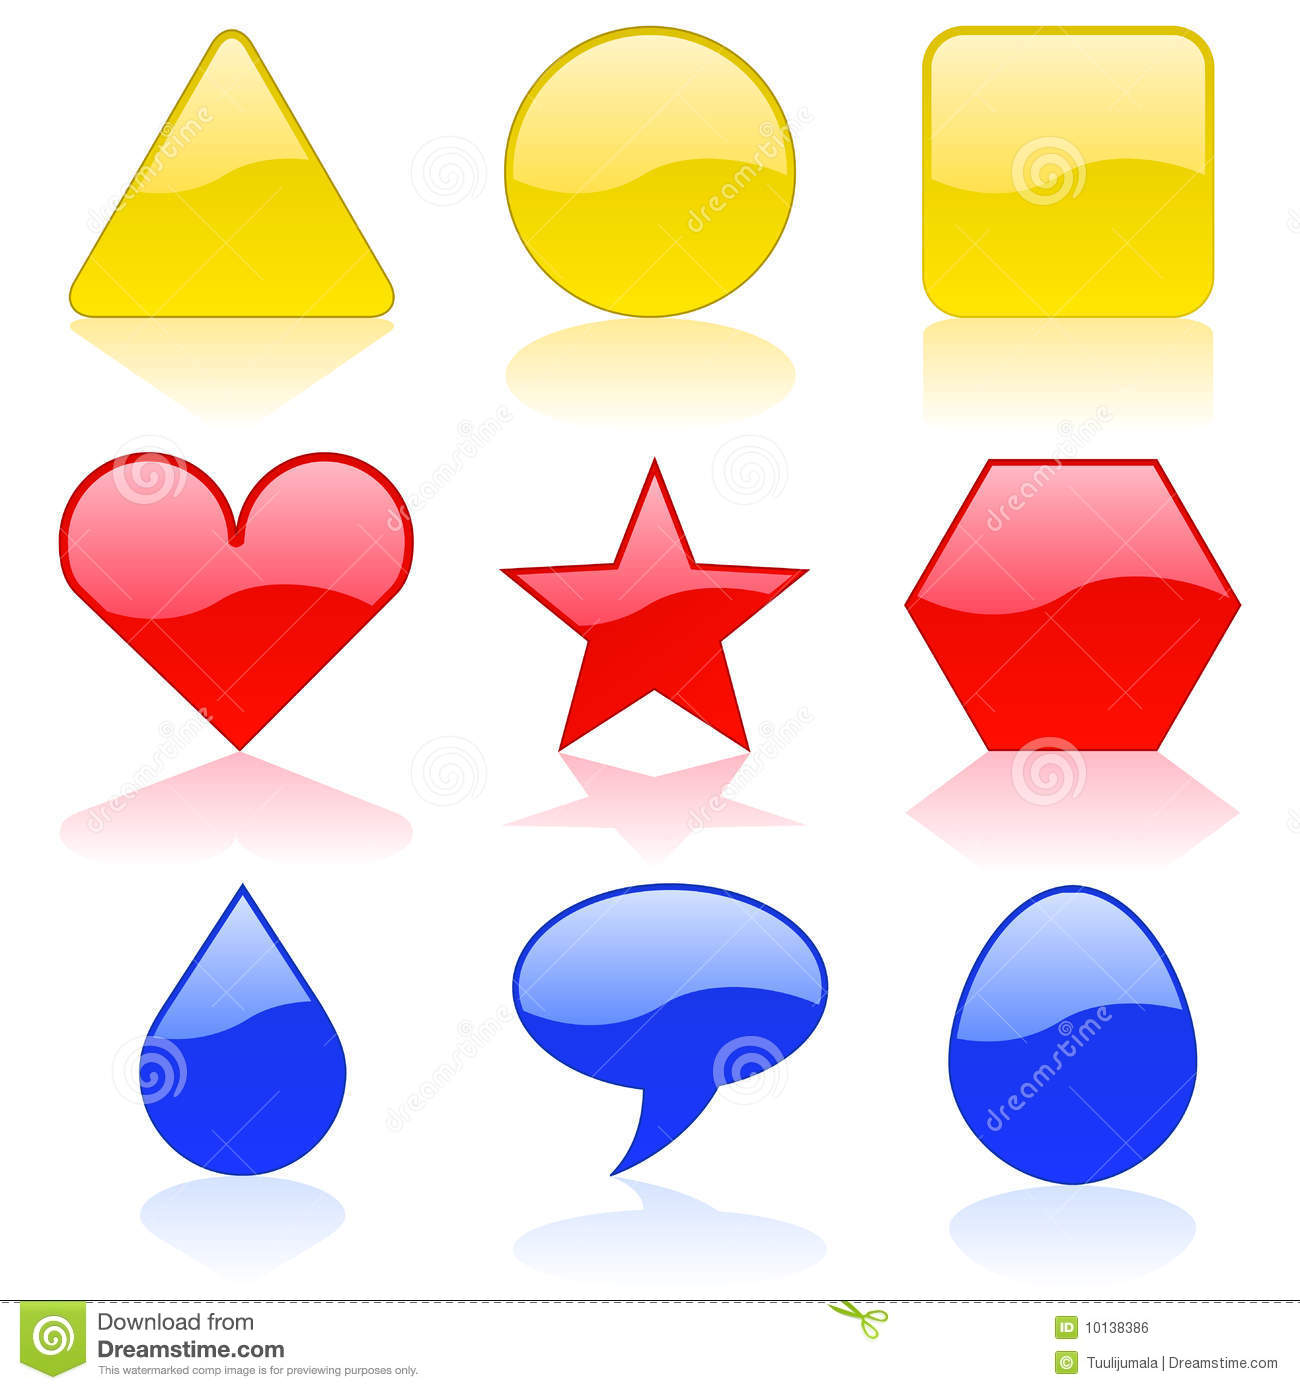 Worksheet Color Shapes color shapes royalty free stock image 10138386 shapes